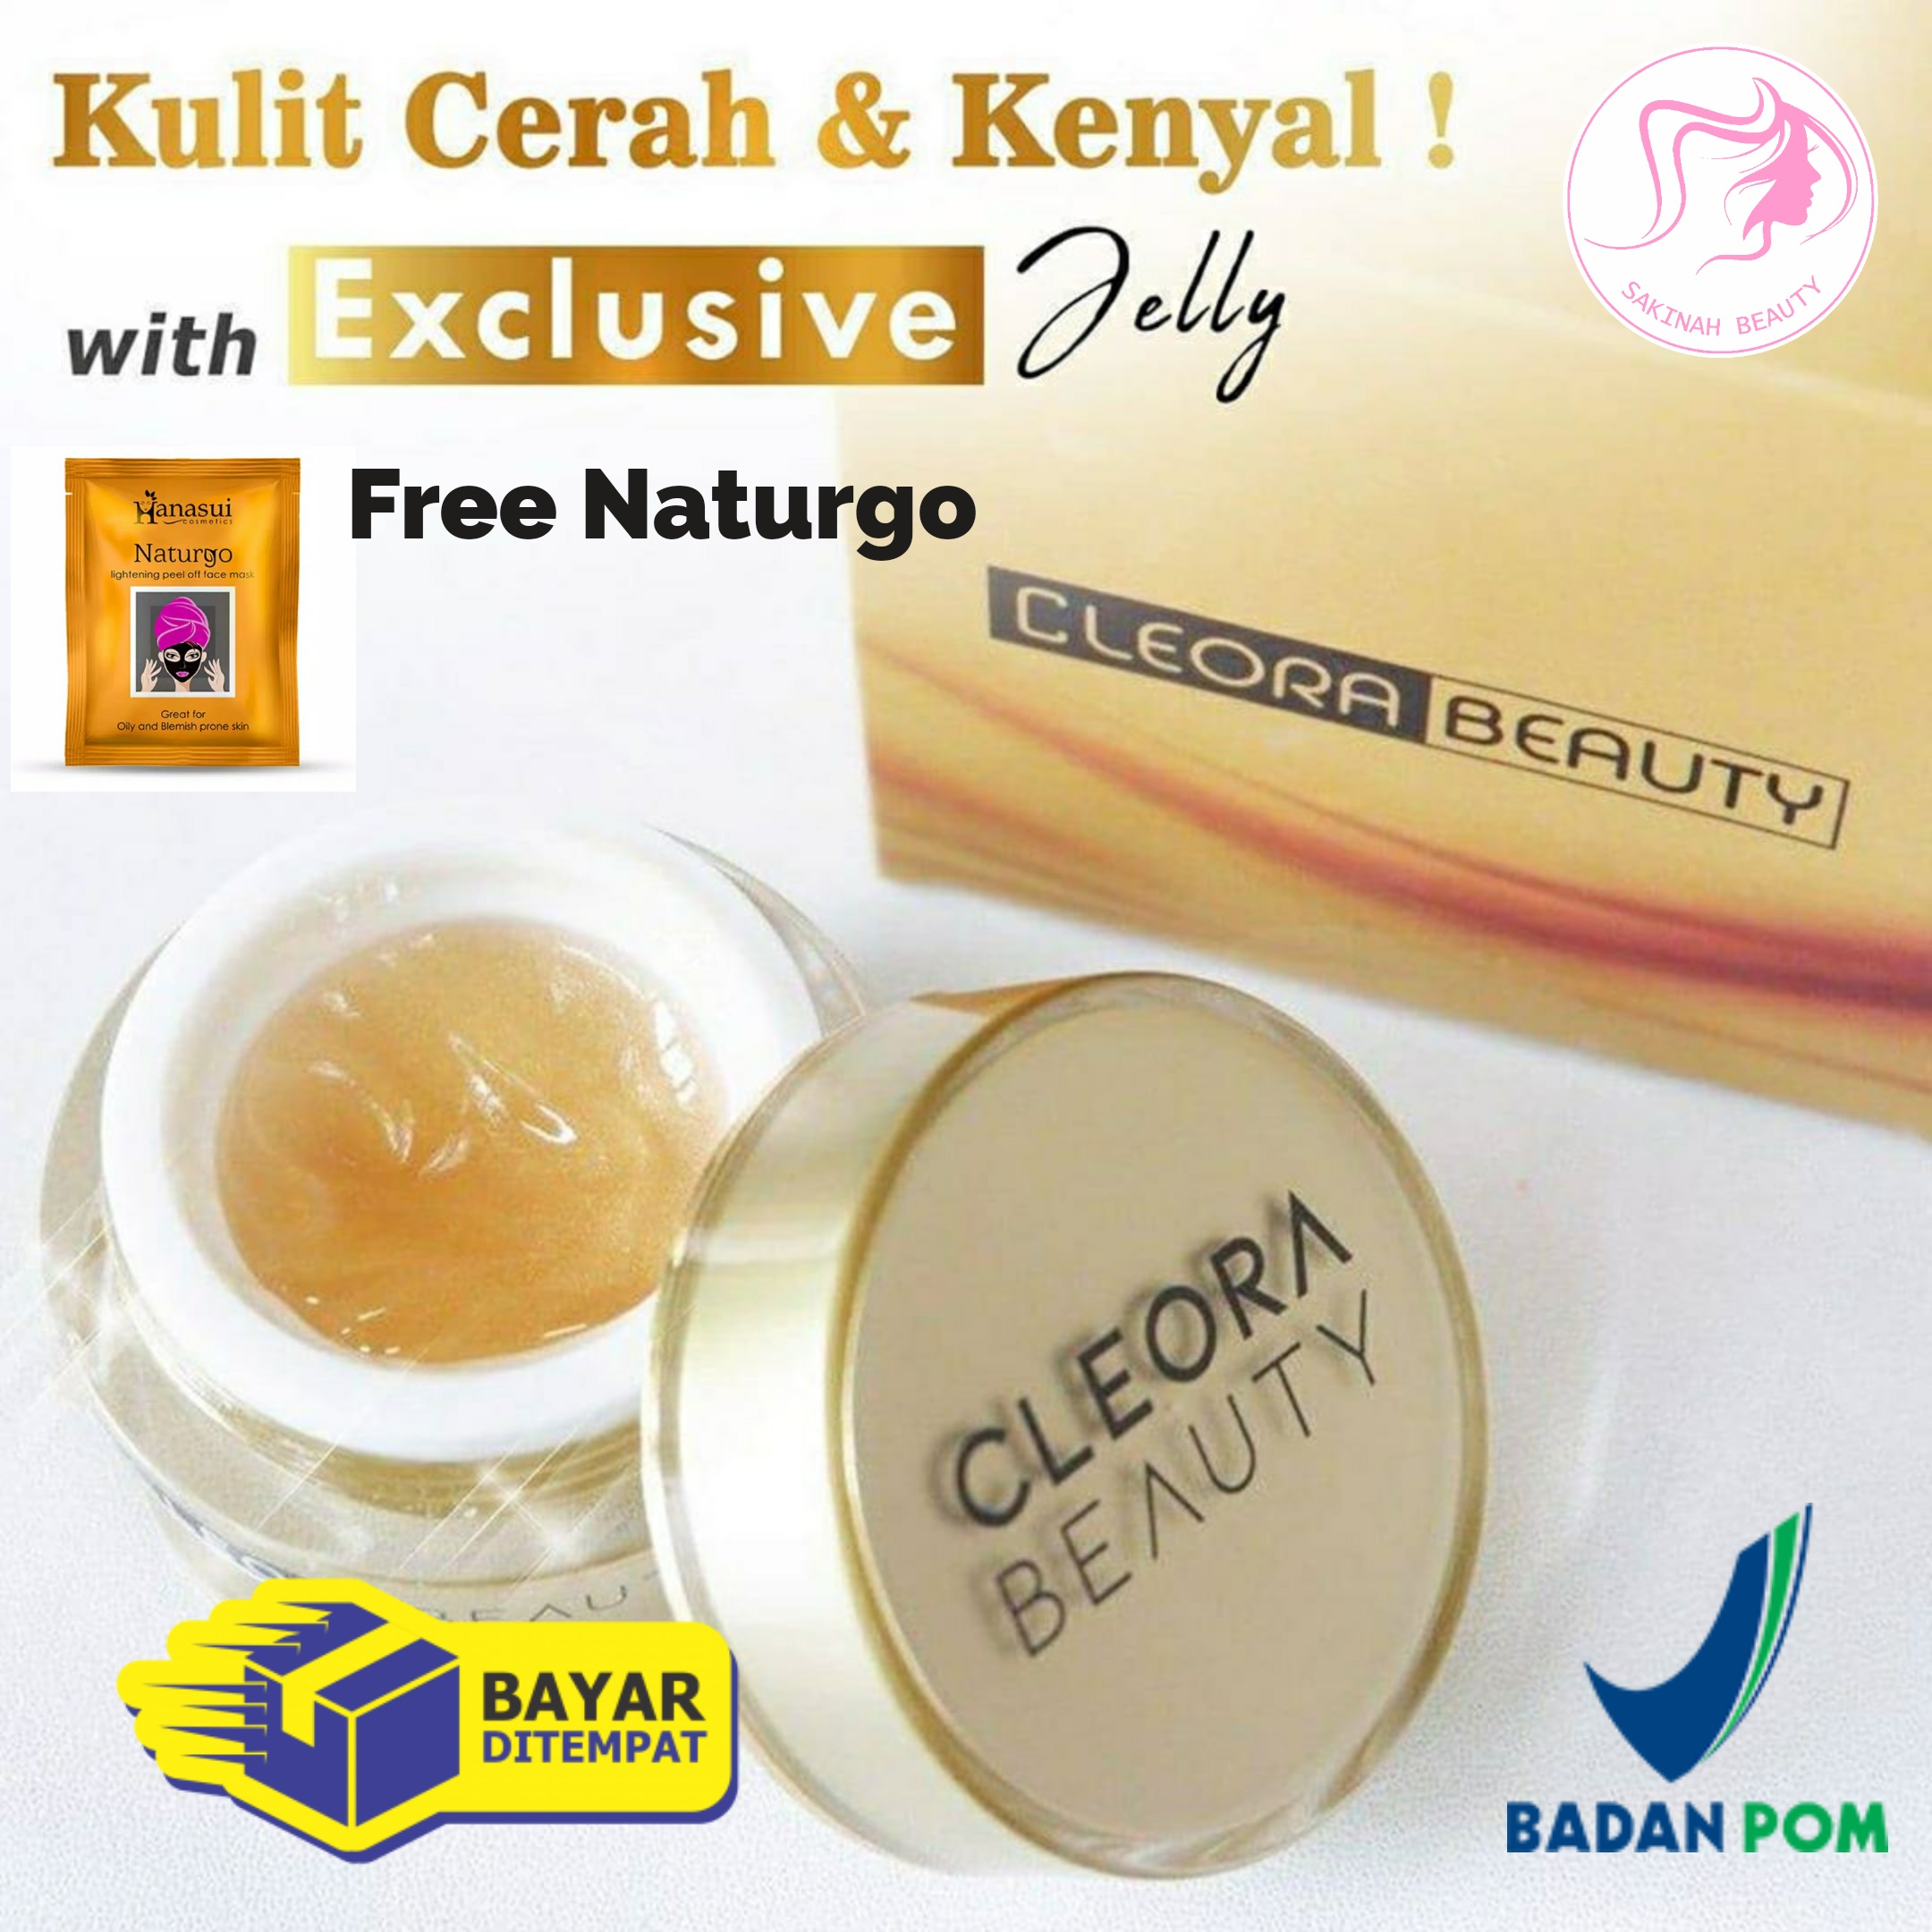 cleora beauty exclusive jelly booster bonus gift